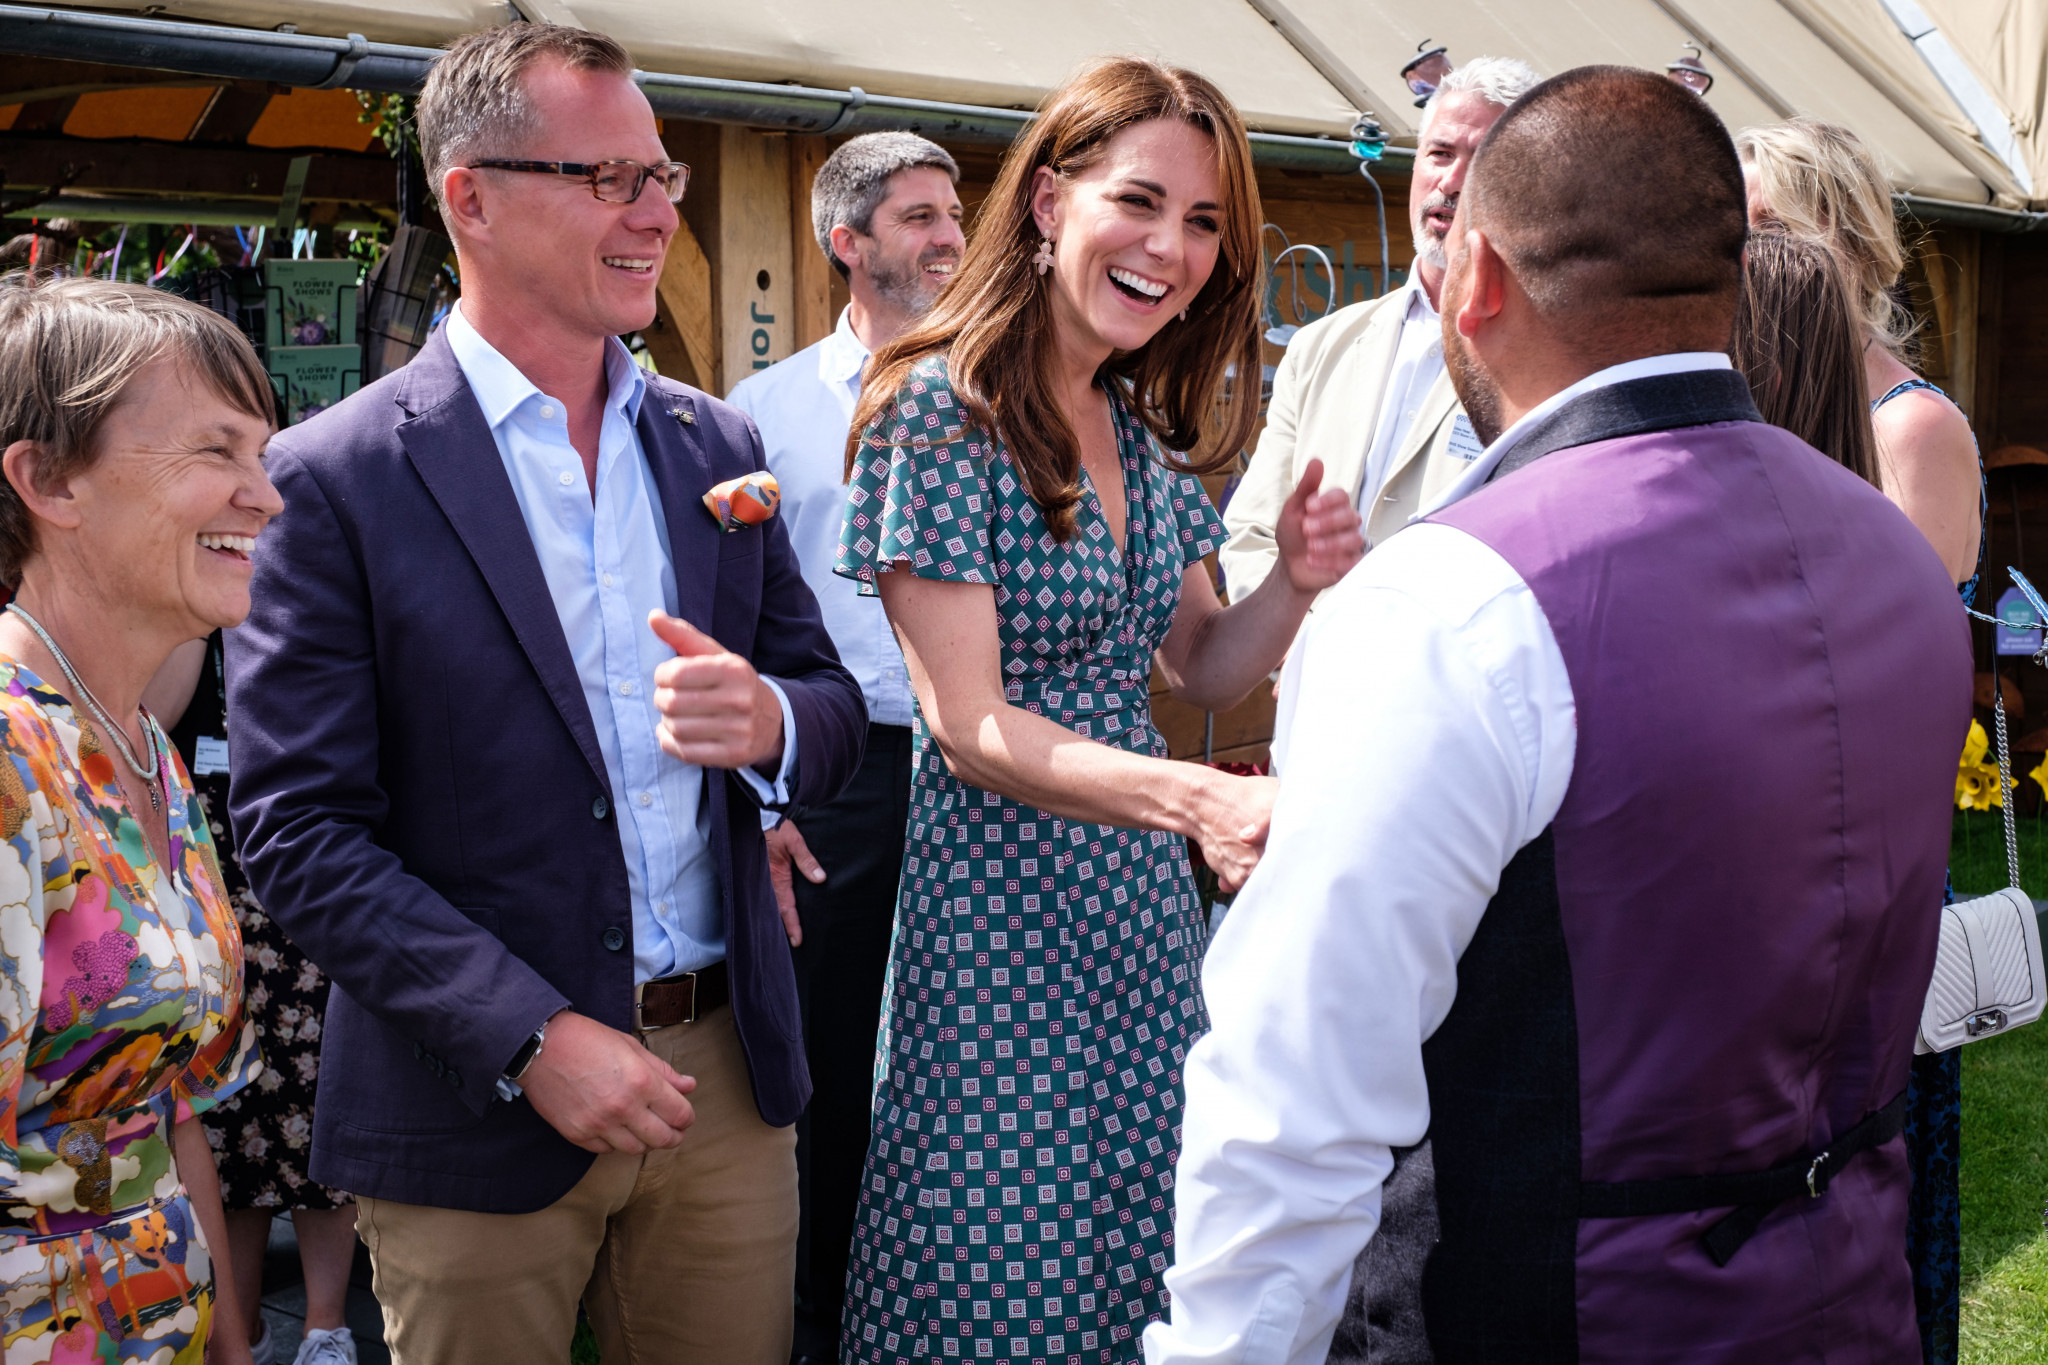 A photo of The Duchess of Cambridge and people